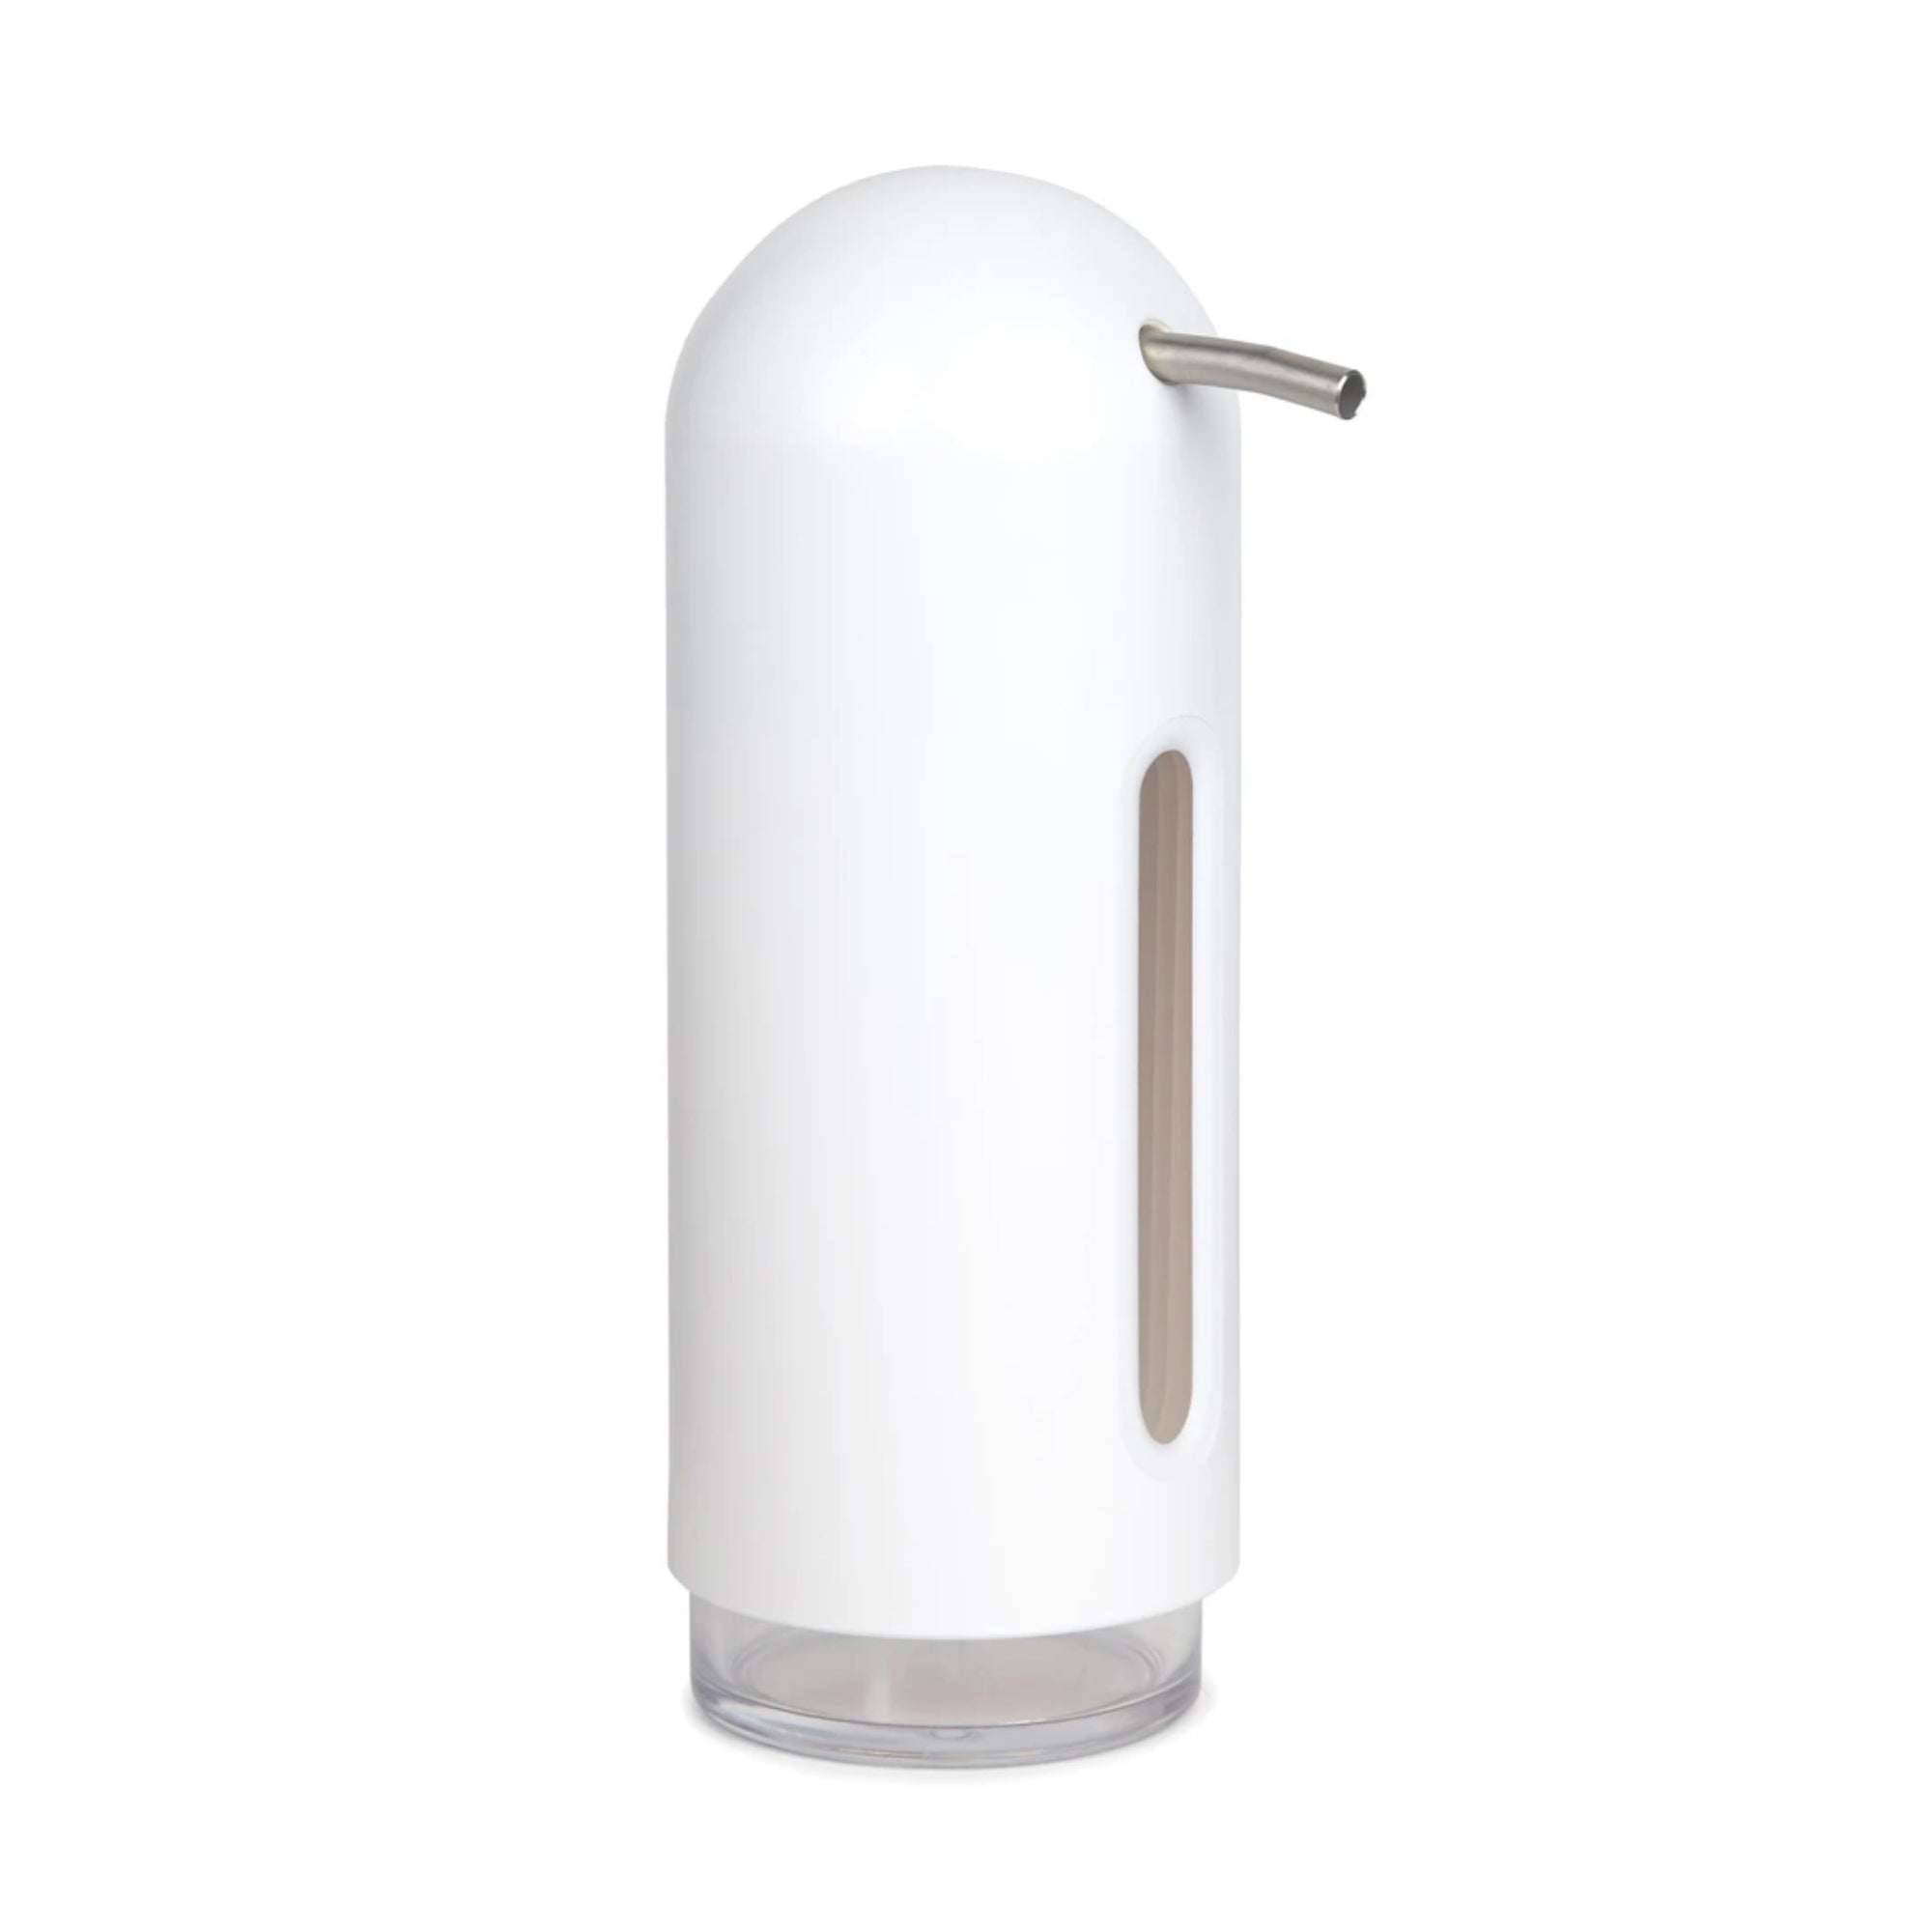 Umbra Penguin soap pump, white